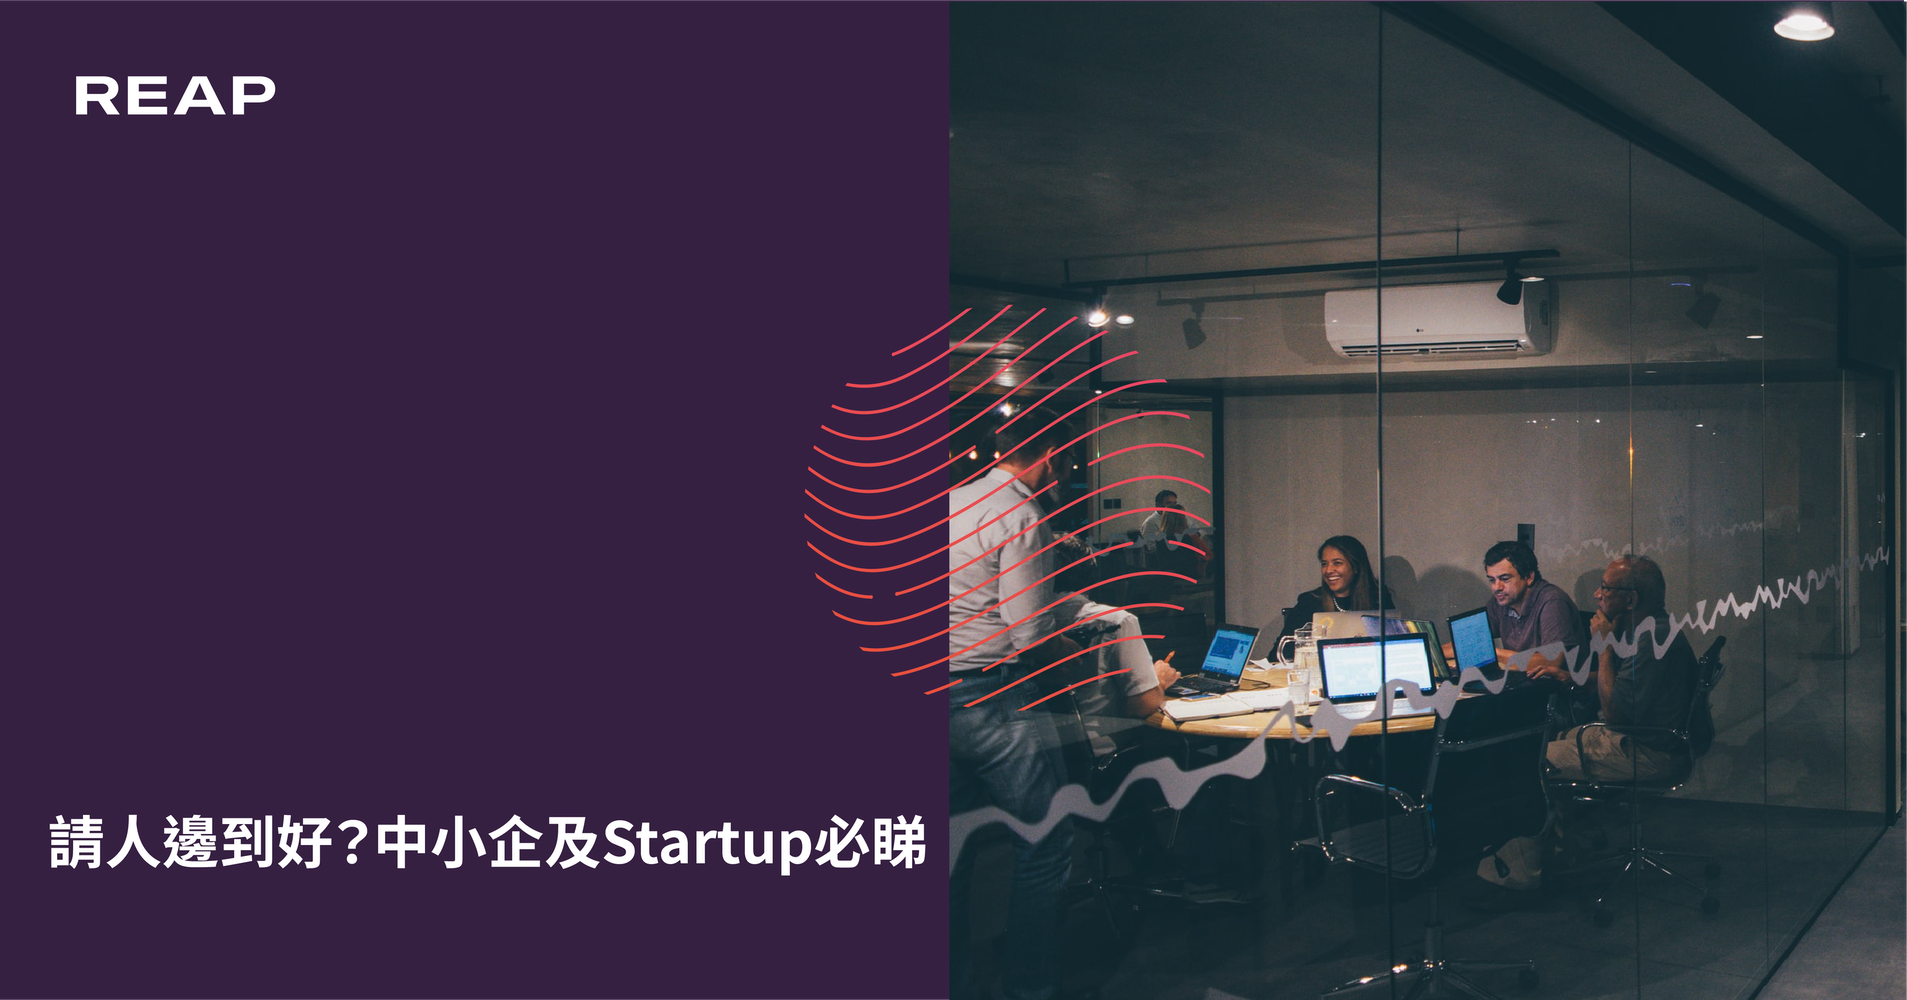 Cover Image for 請人邊到好?中小企及Startup必睇